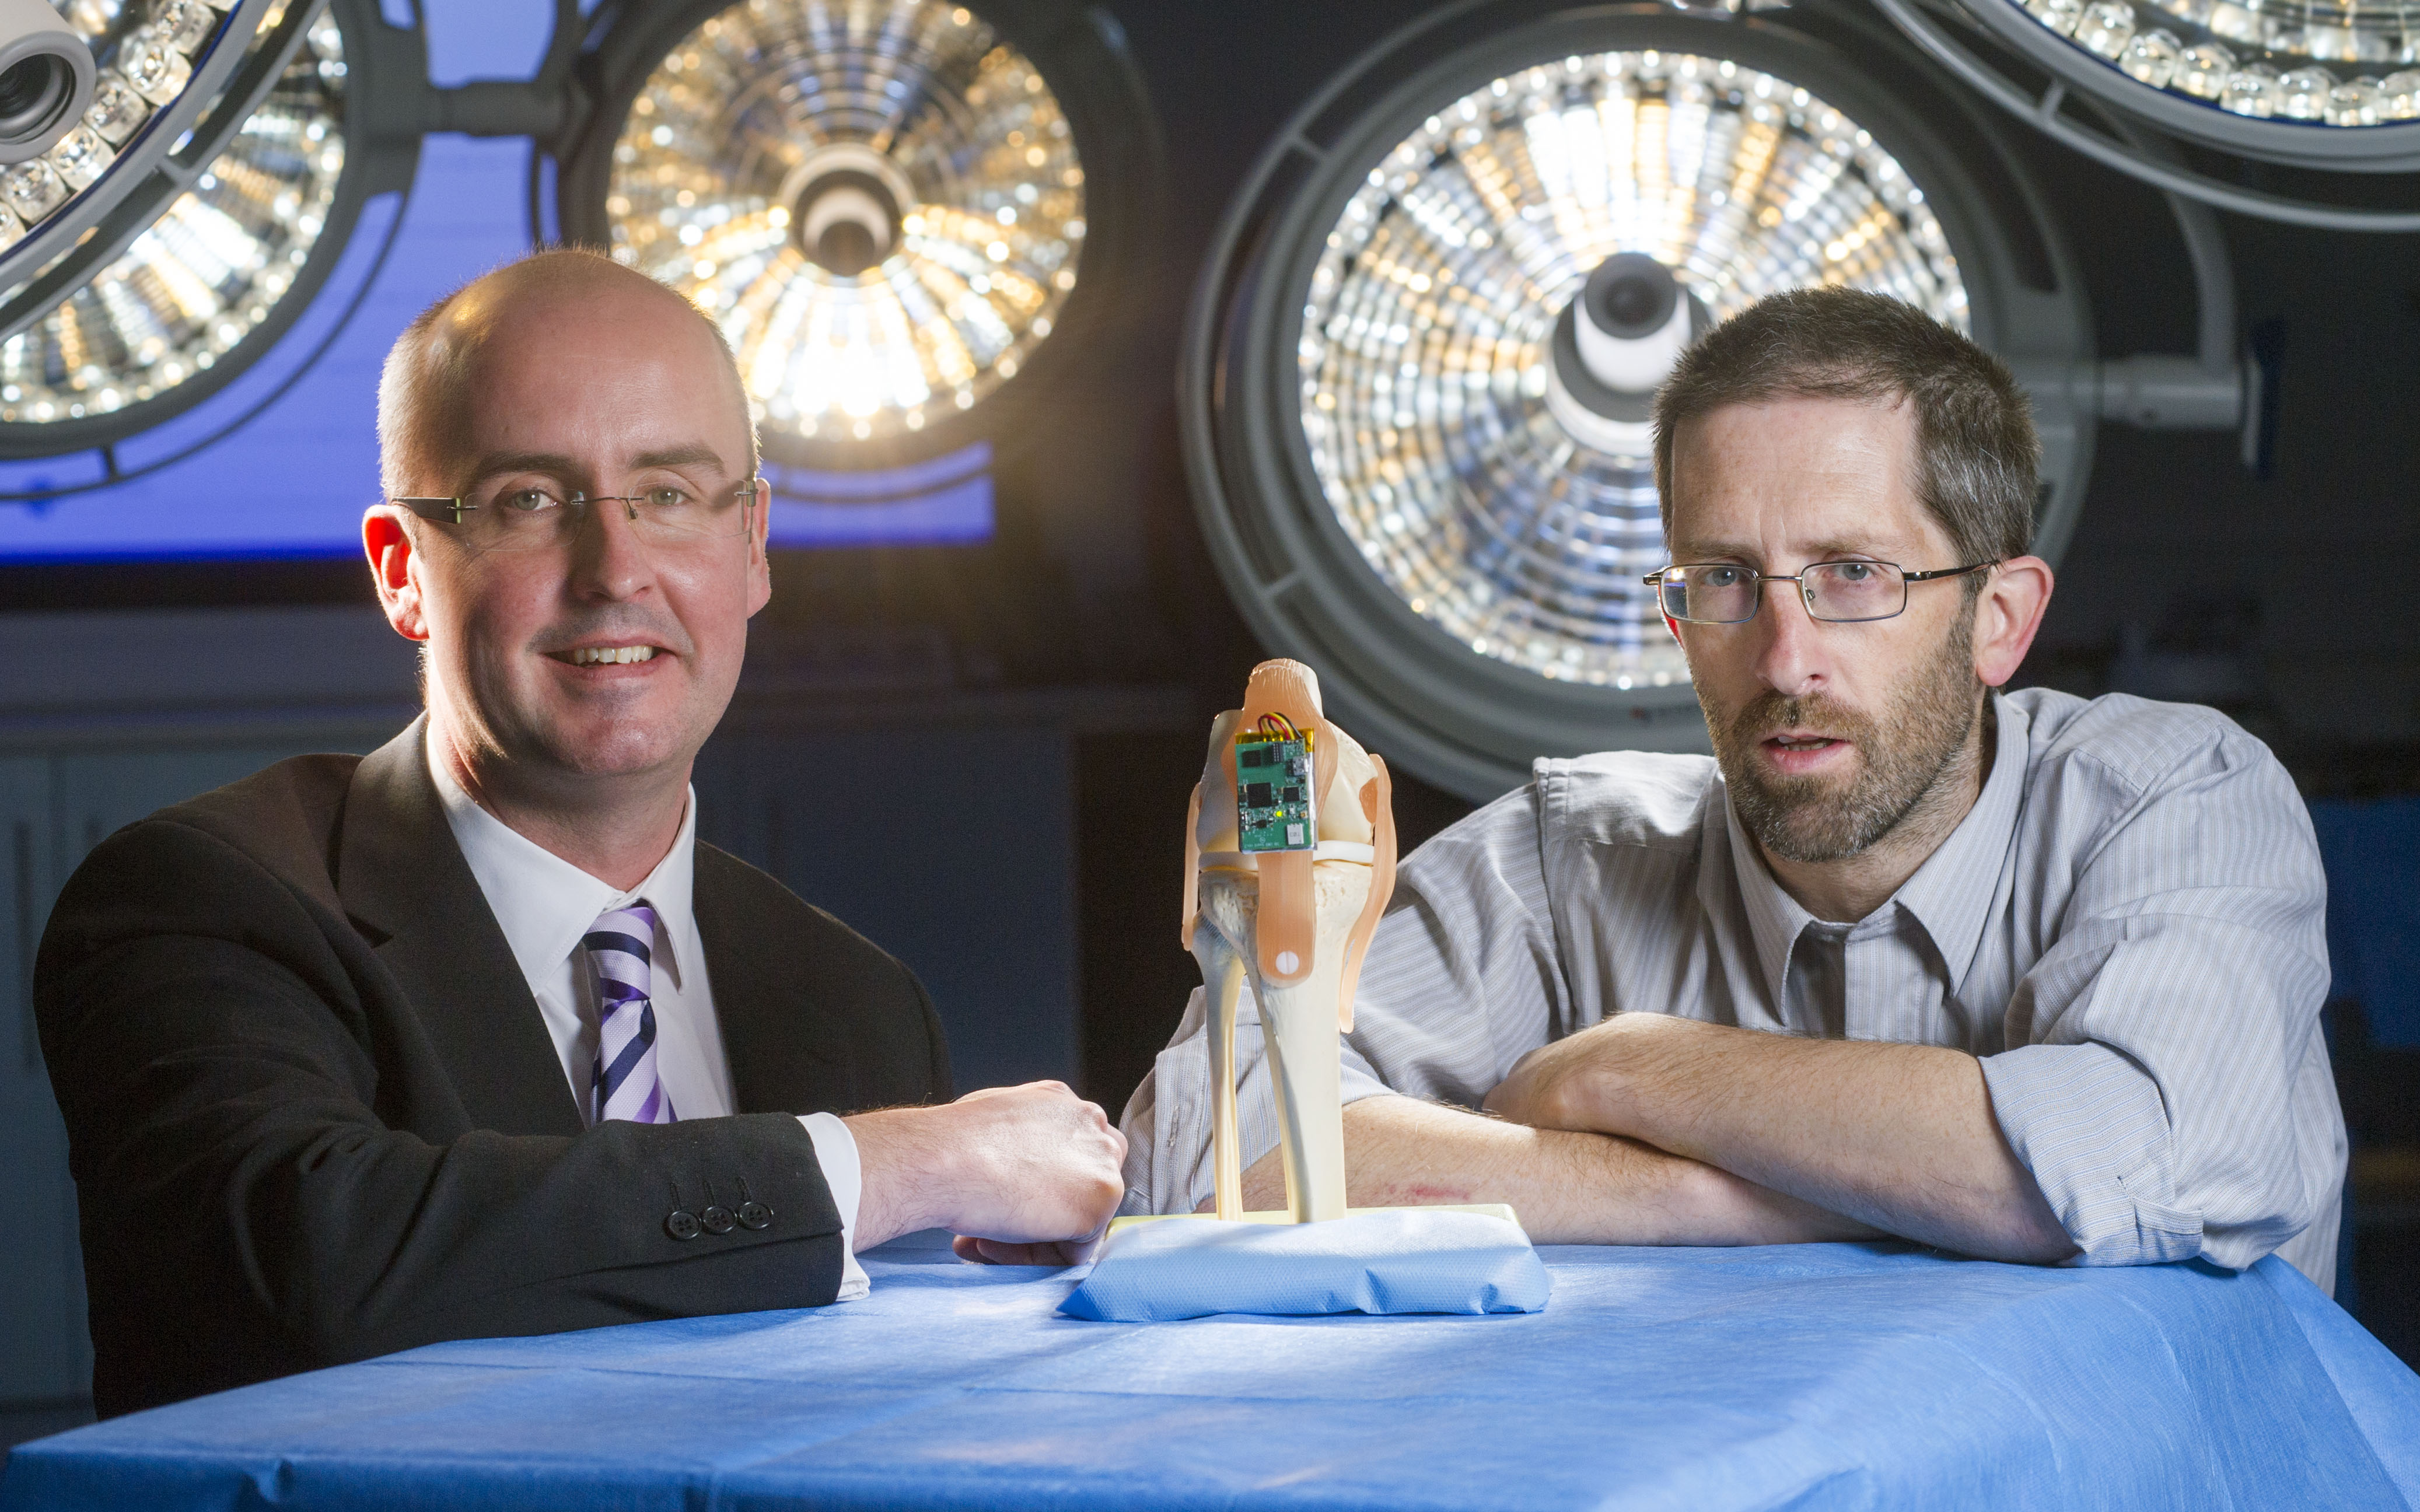 Heal knee faster after surgery – Cork scientists develop 'smart knee' device